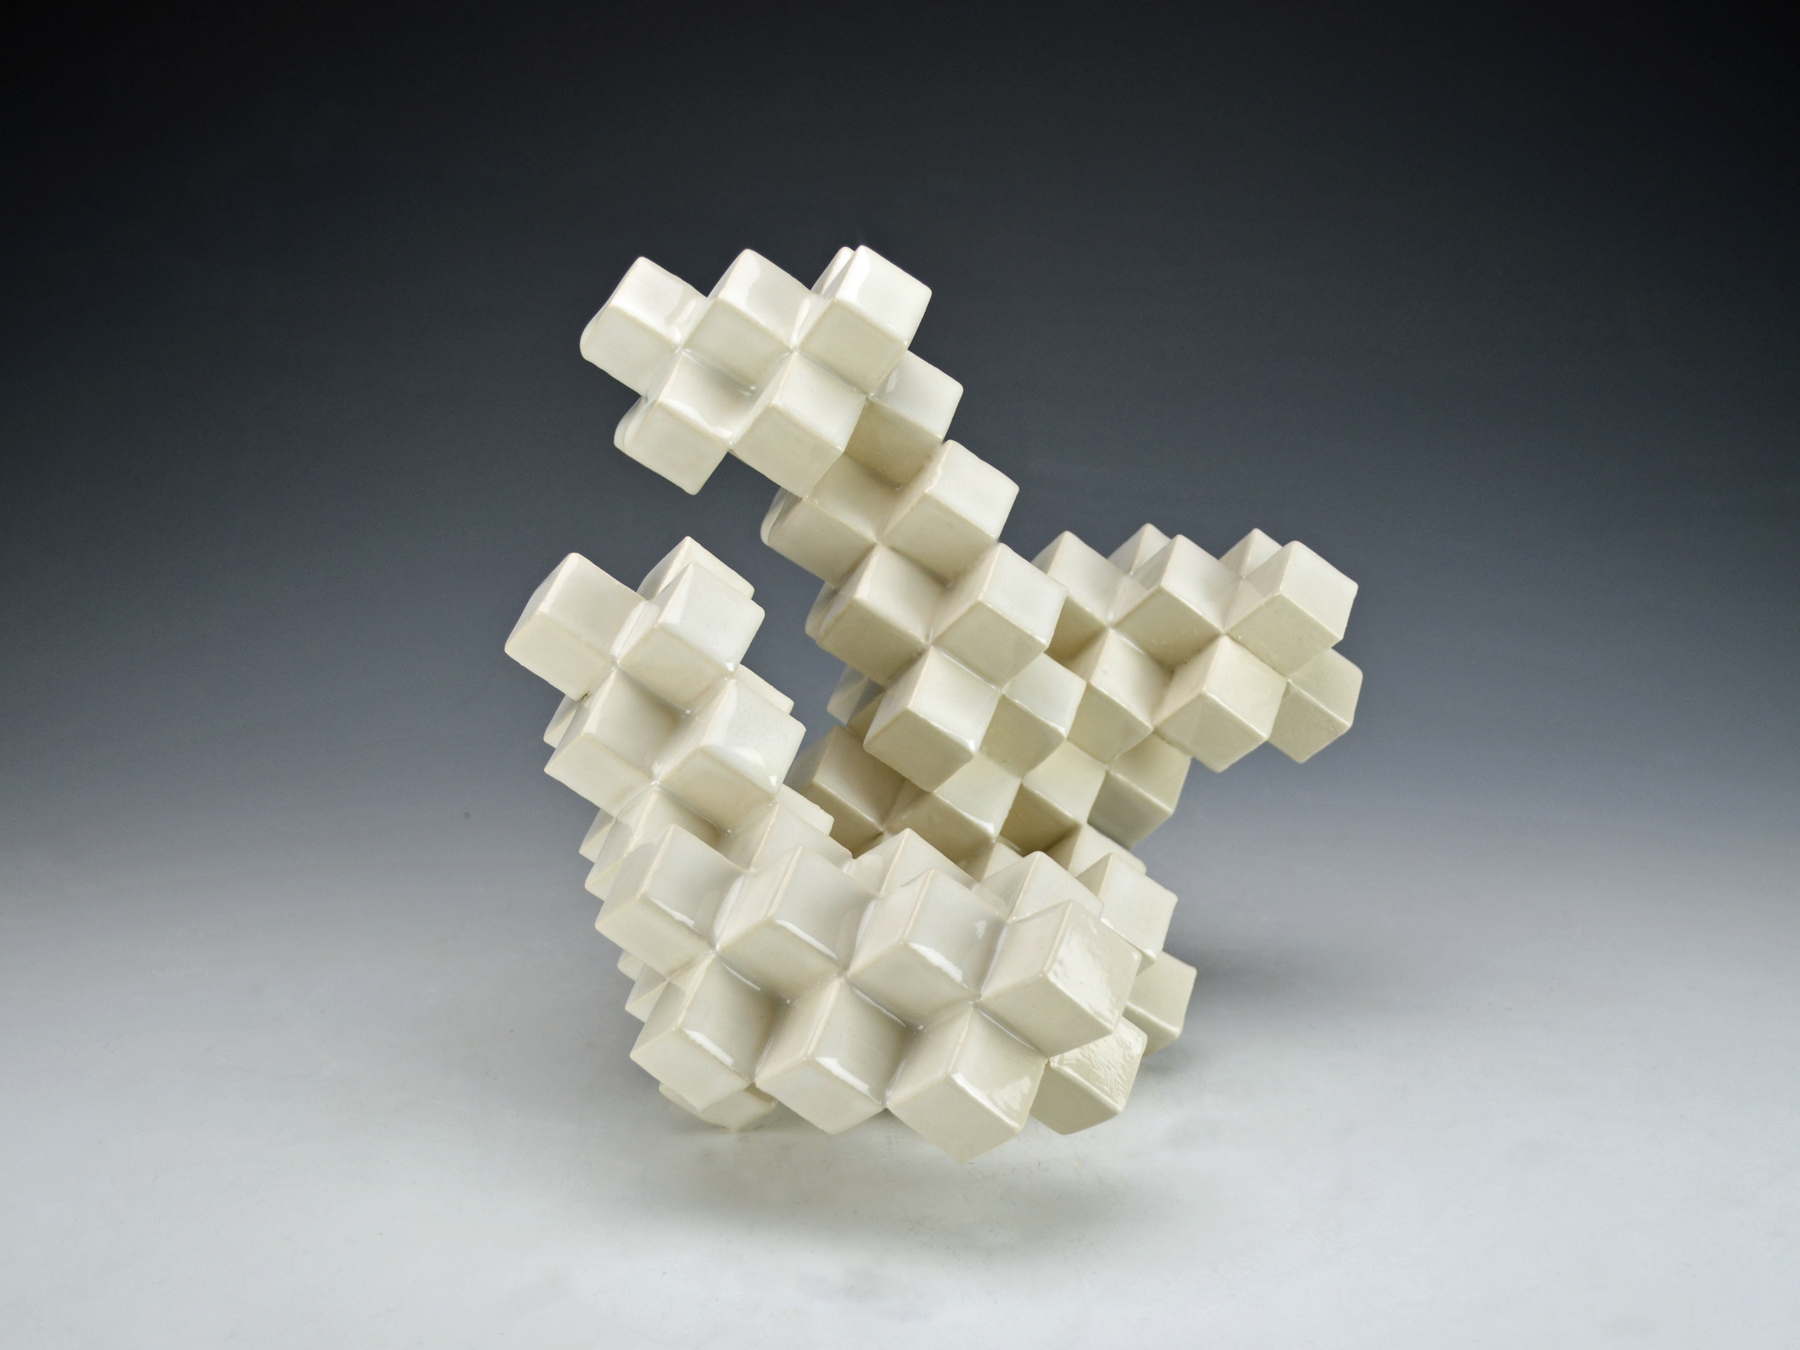 Cubic Series: Construction III  |  11 x 10 x 9 inches  |  Porcelain, Glaze  |  2017